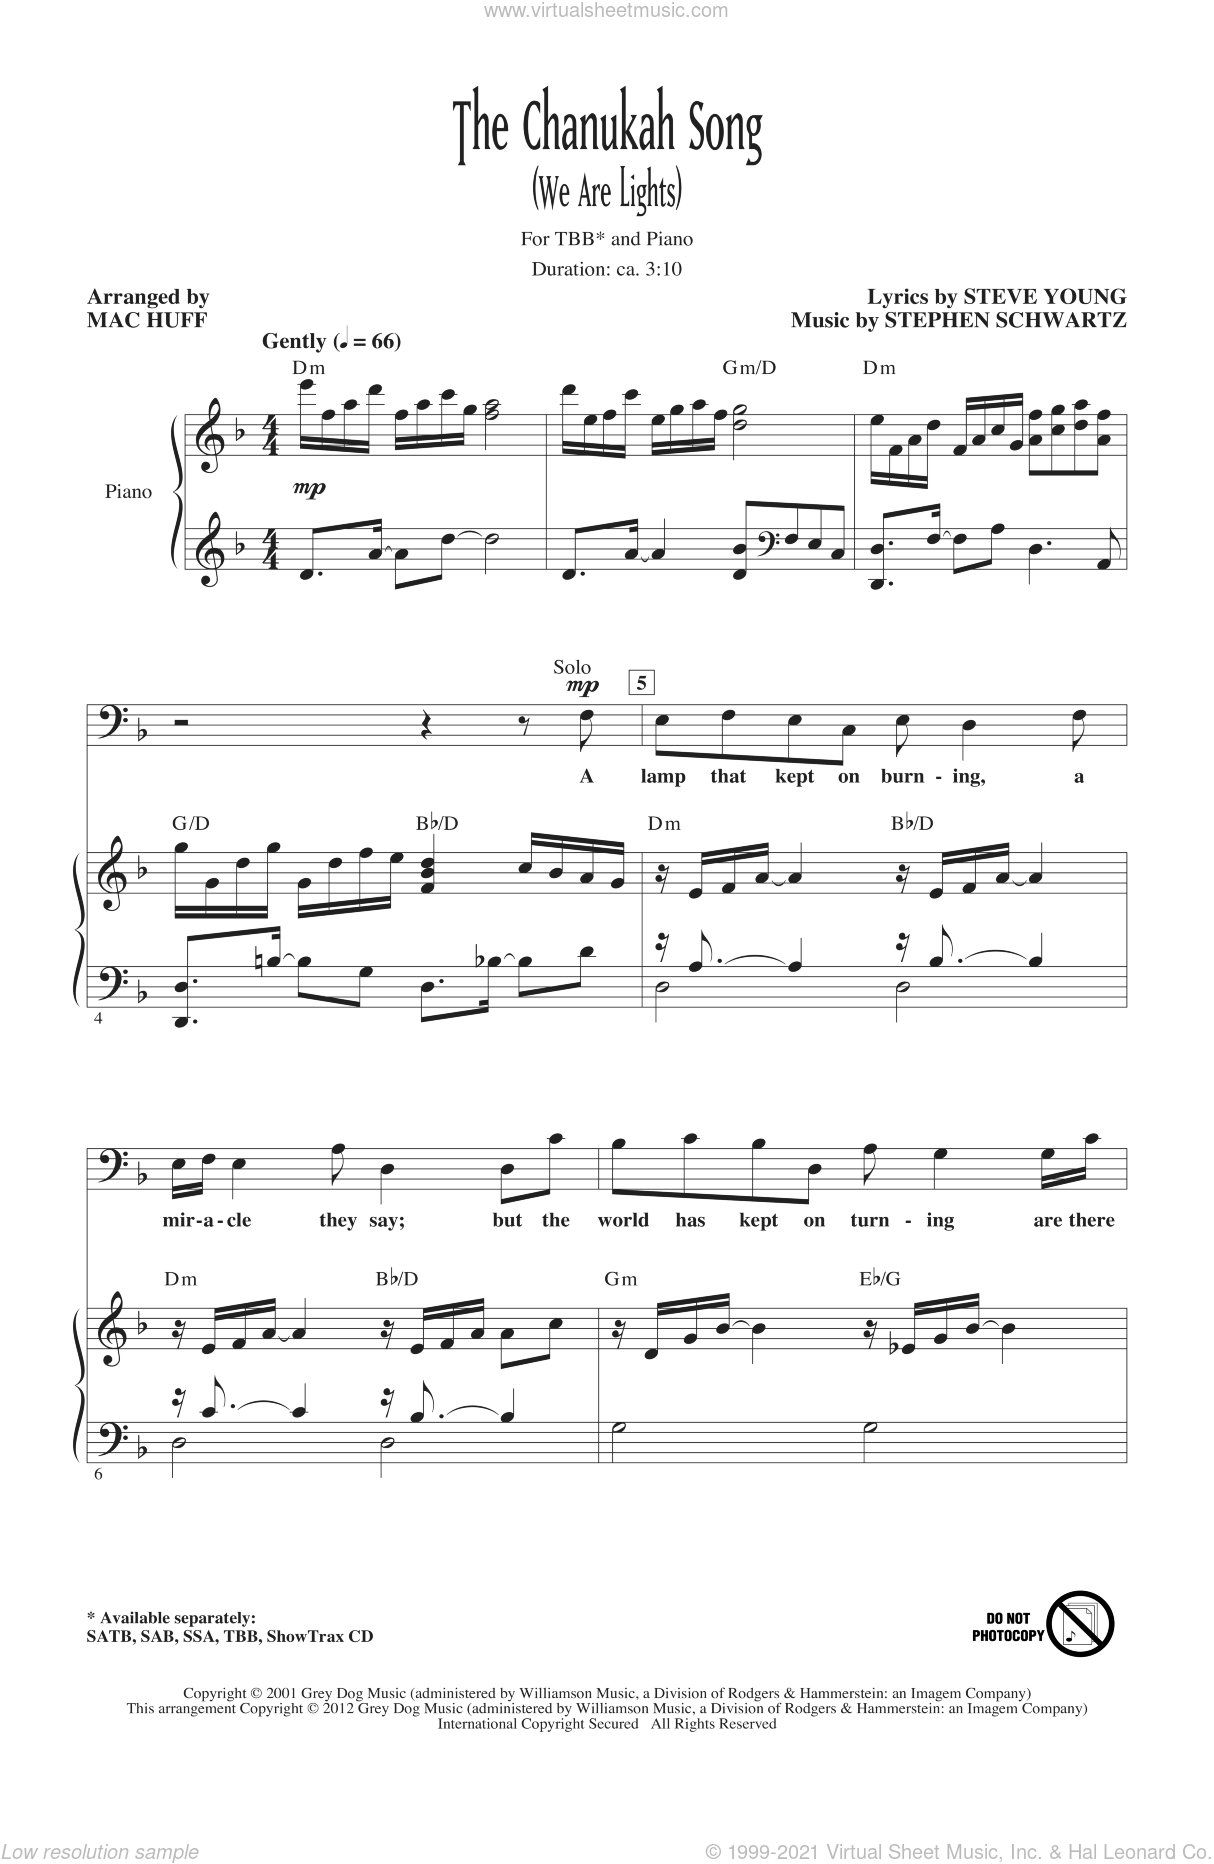 The Chanukah Song (We Are Lights) sheet music for choir and piano (TBB) by Stephen Schwartz